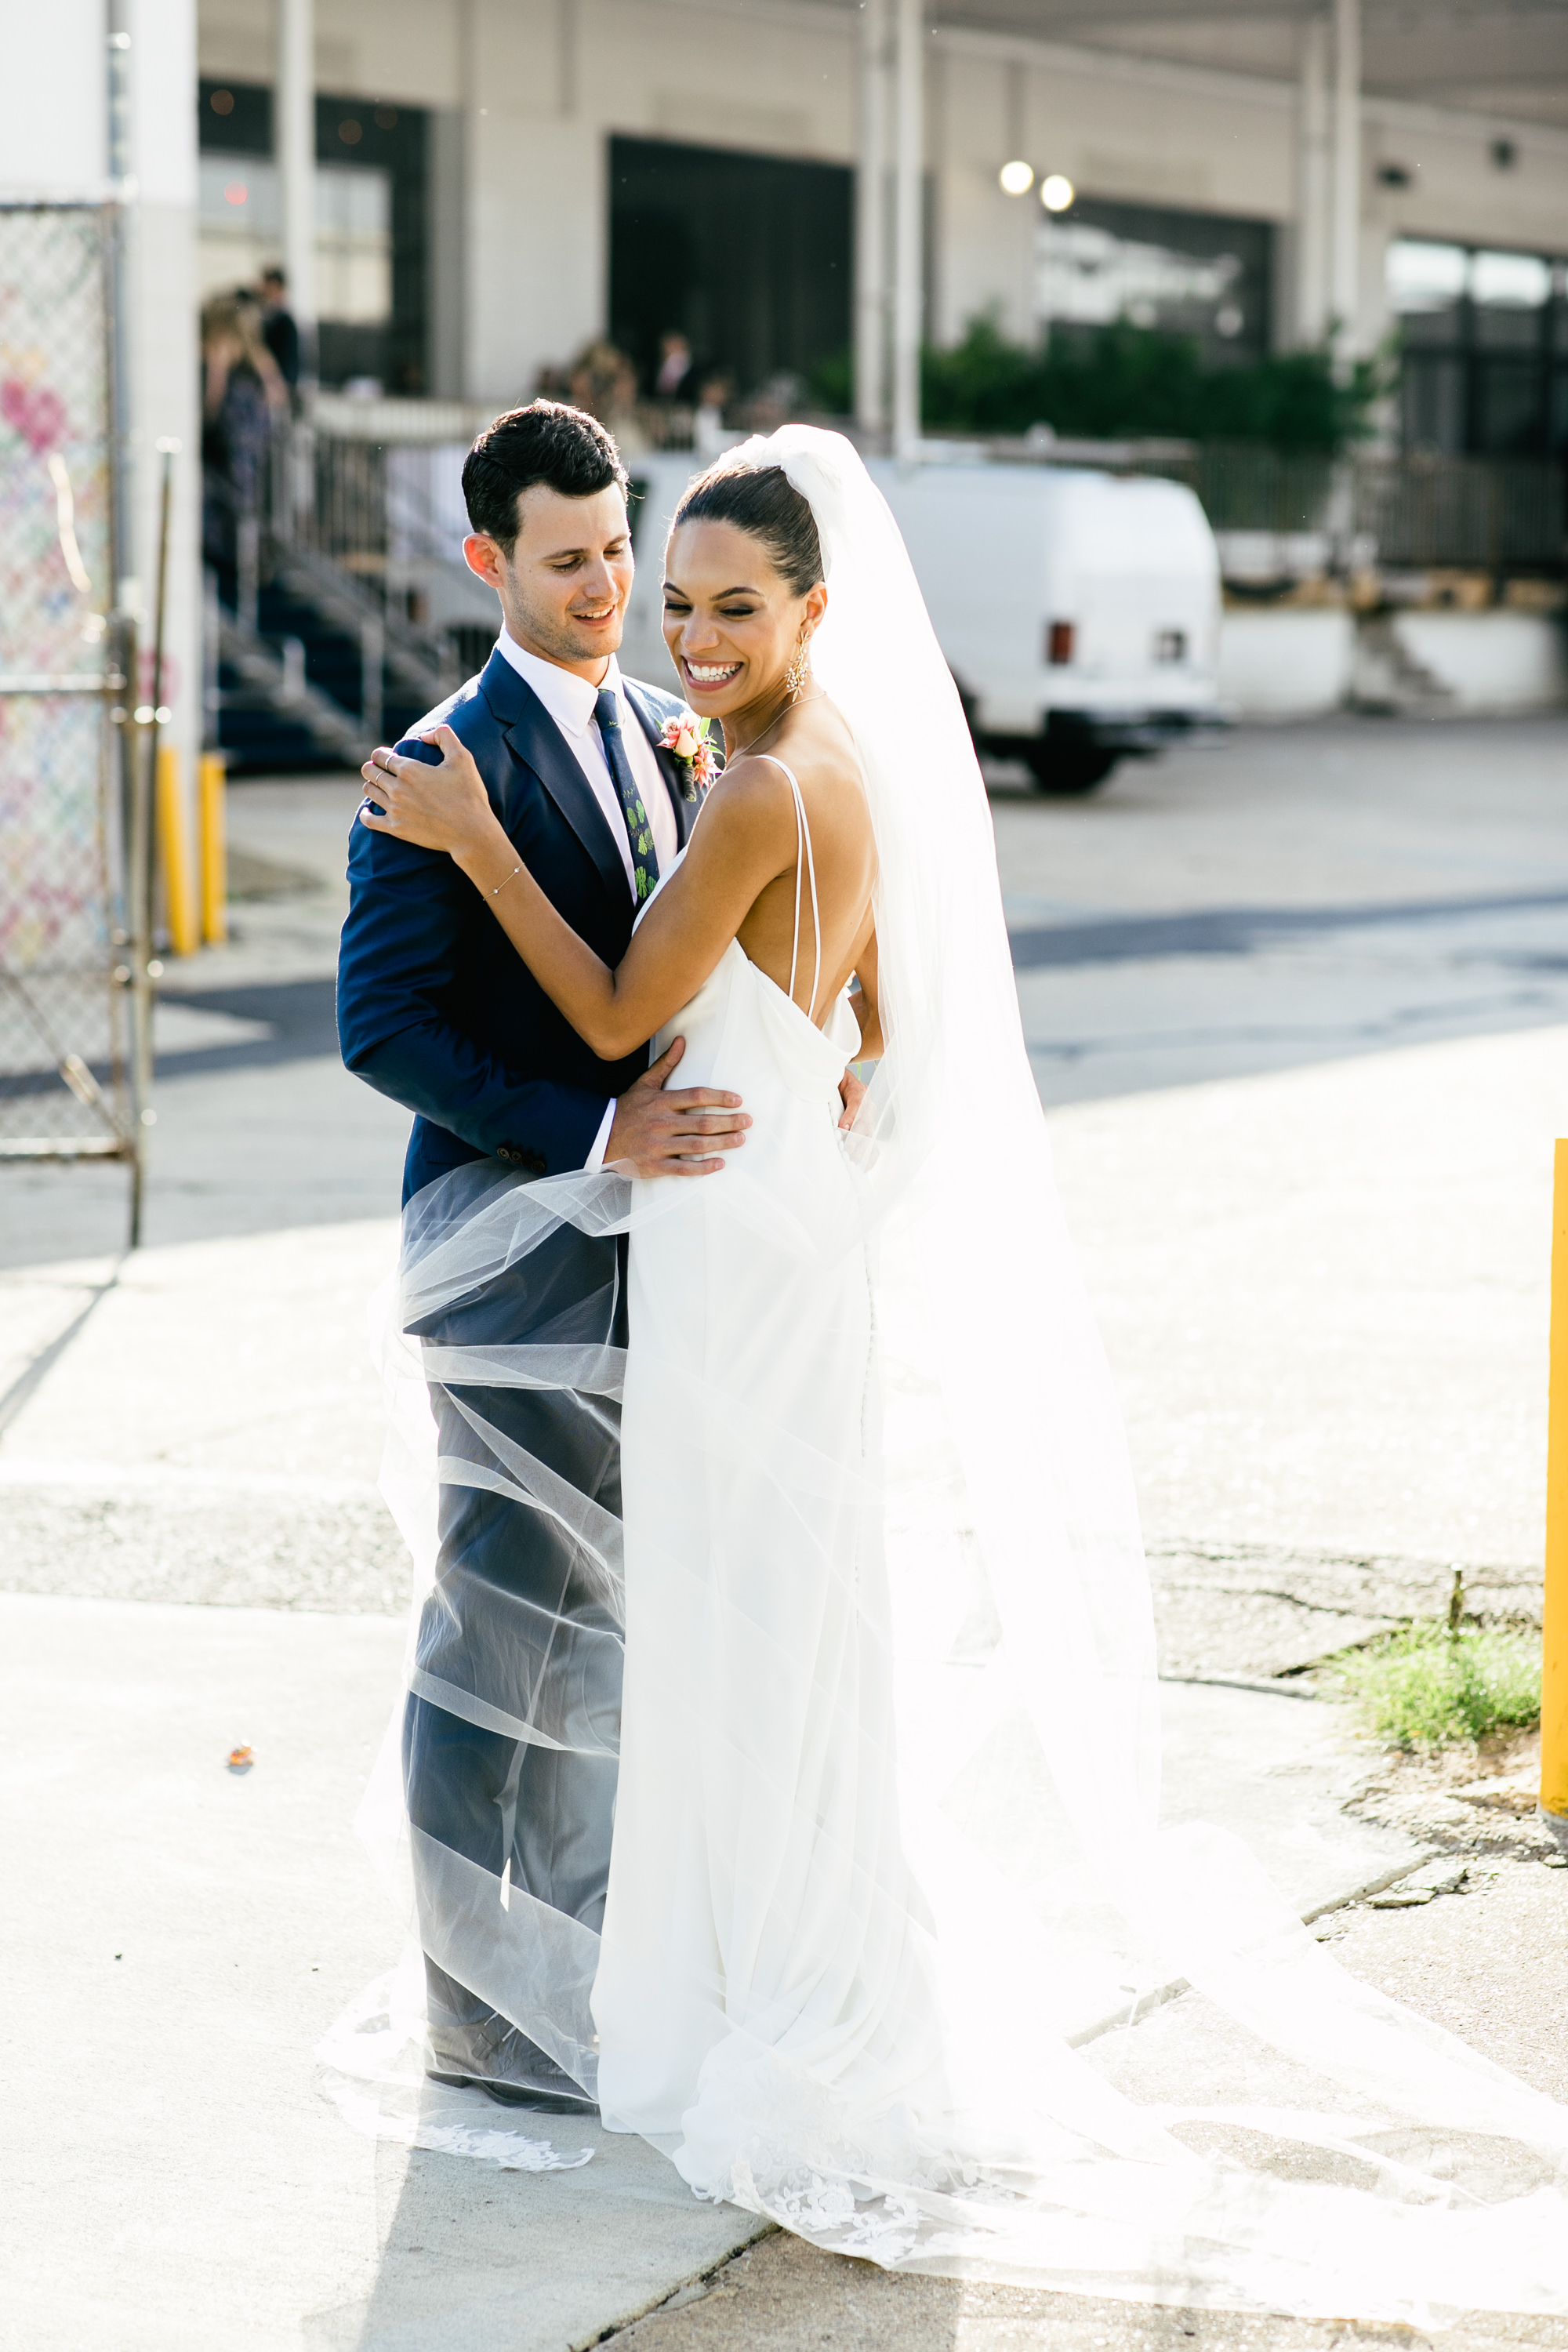 photography-wedding-weddings-natural-candid-dock 5 dc-washington dc-philadelphia-mixed race-editorial-modern-fine-art-007.JPG